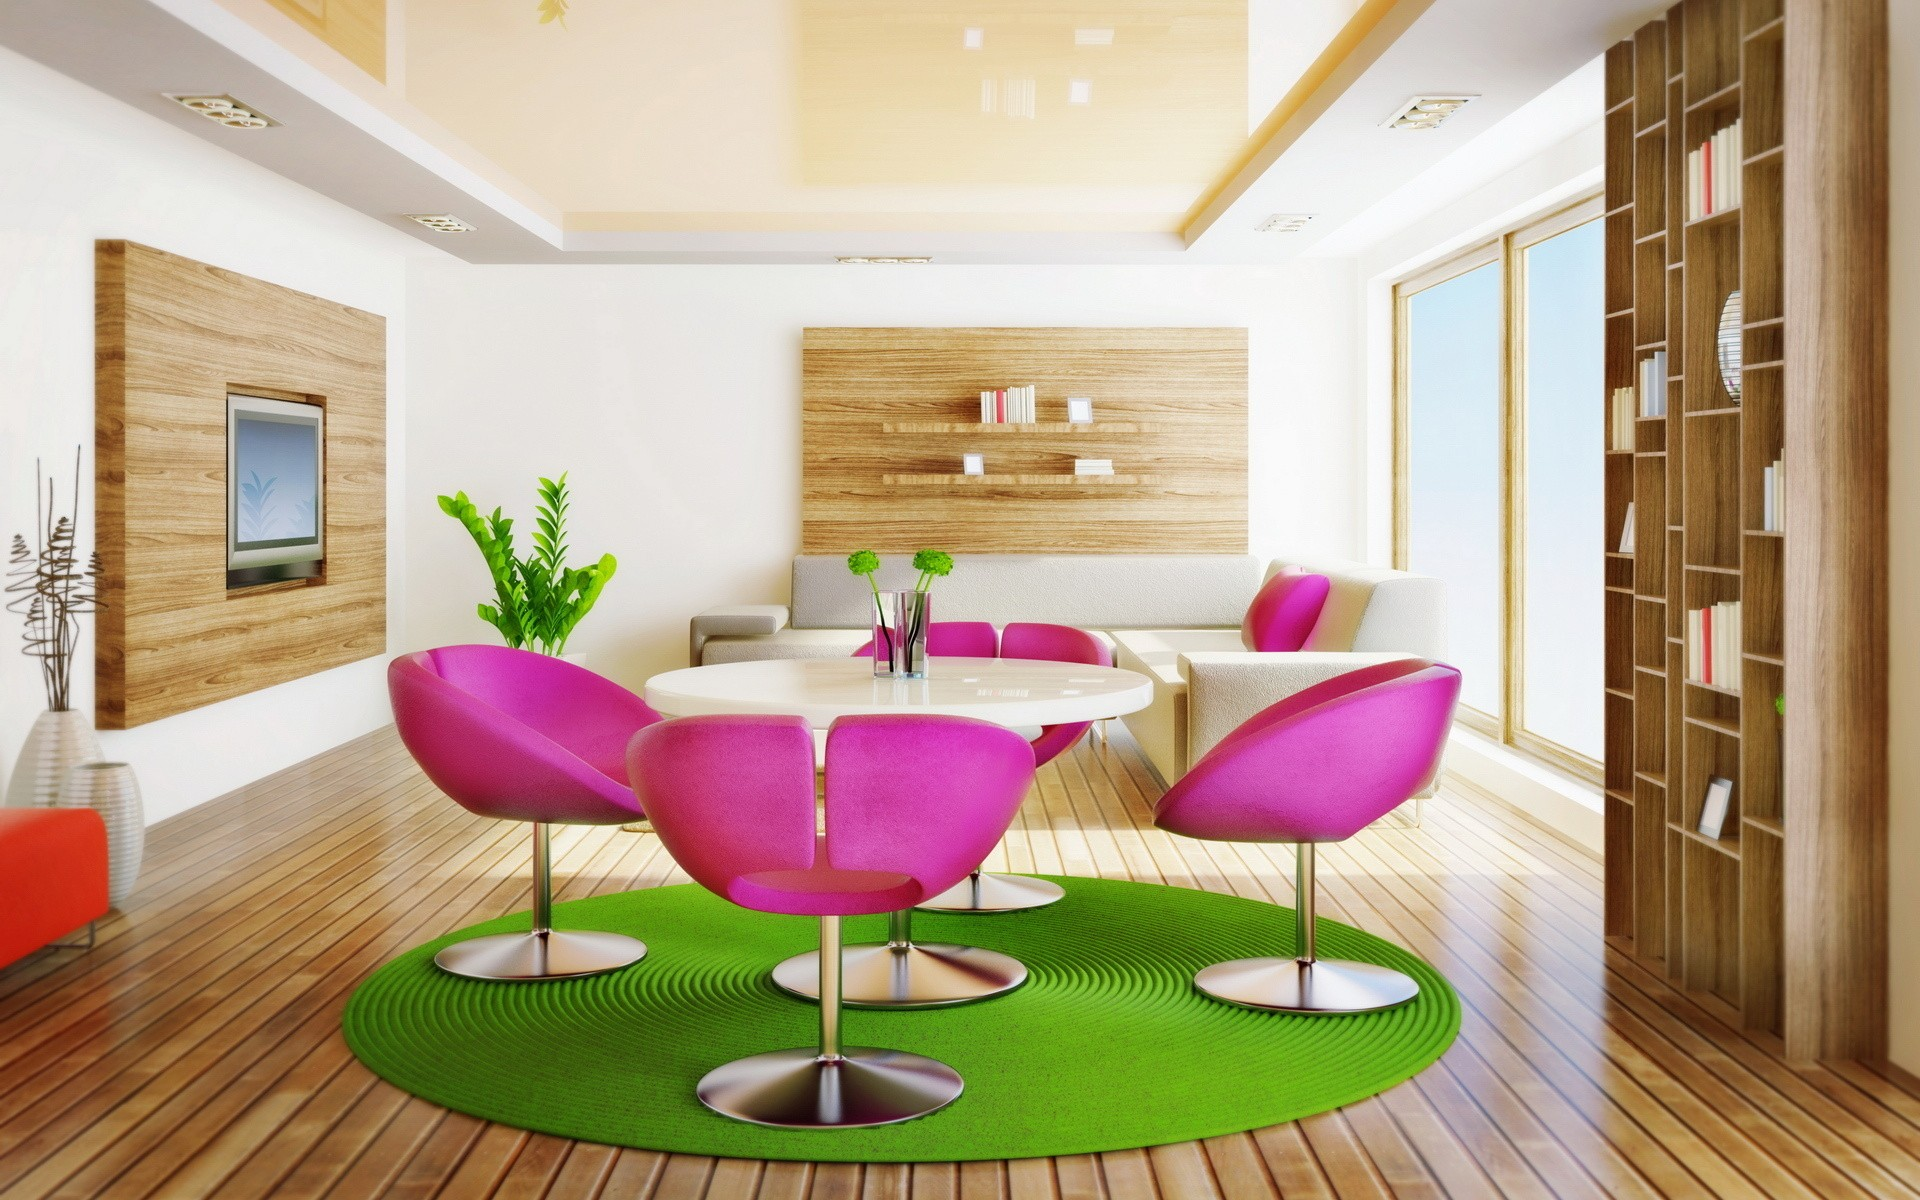 Interior design for dummies unity in interior design purple and green goes well with natural brown